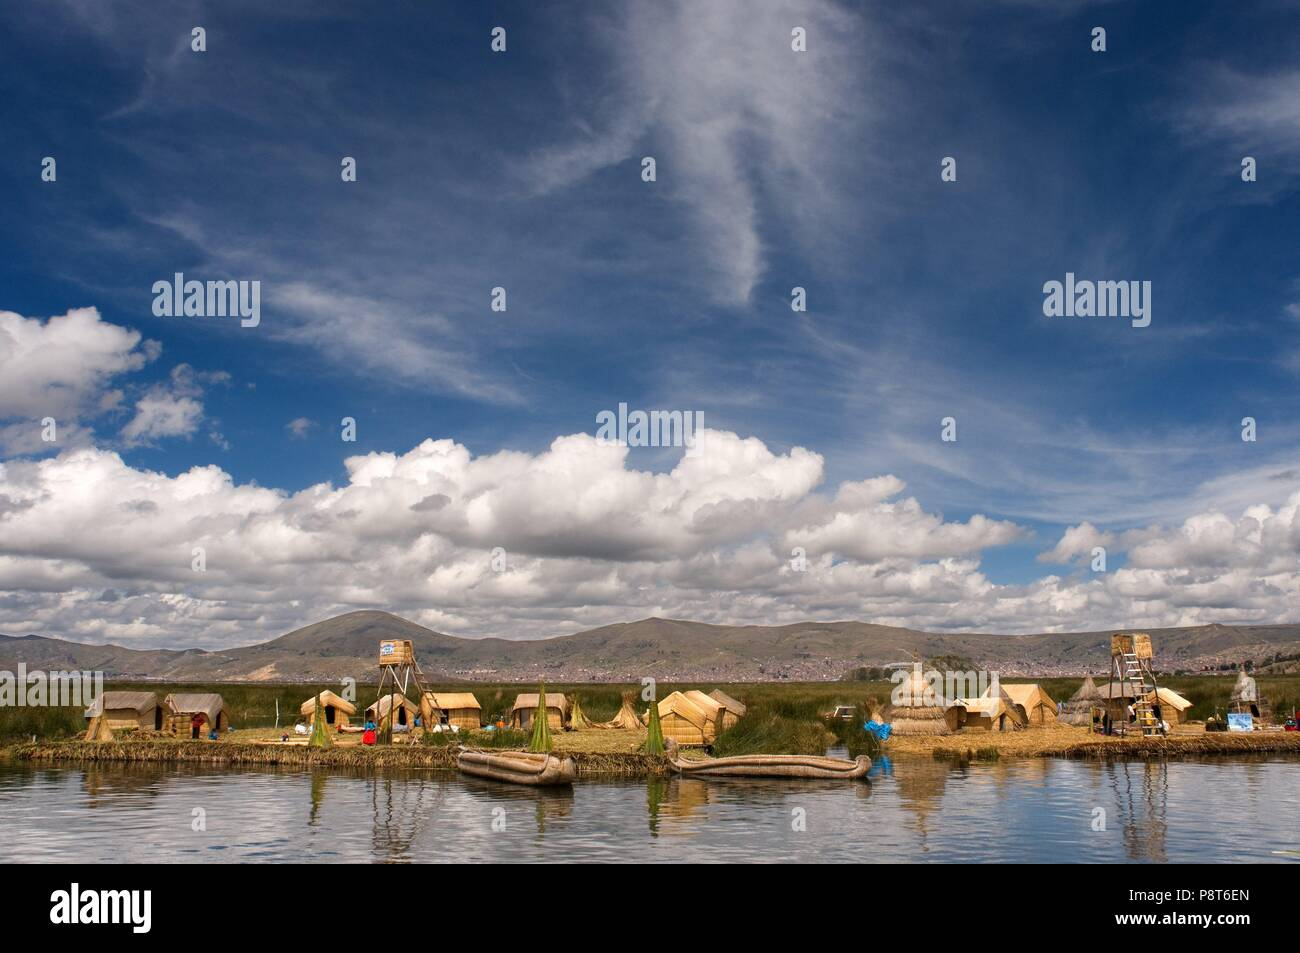 Uros Island, Lake Titicaca, peru, South America.  These islands are built on a dense totora vegetation, which with the passage of time interweave their roots forming a natural layer called Killi. January 2018 | usage worldwide Stock Photo